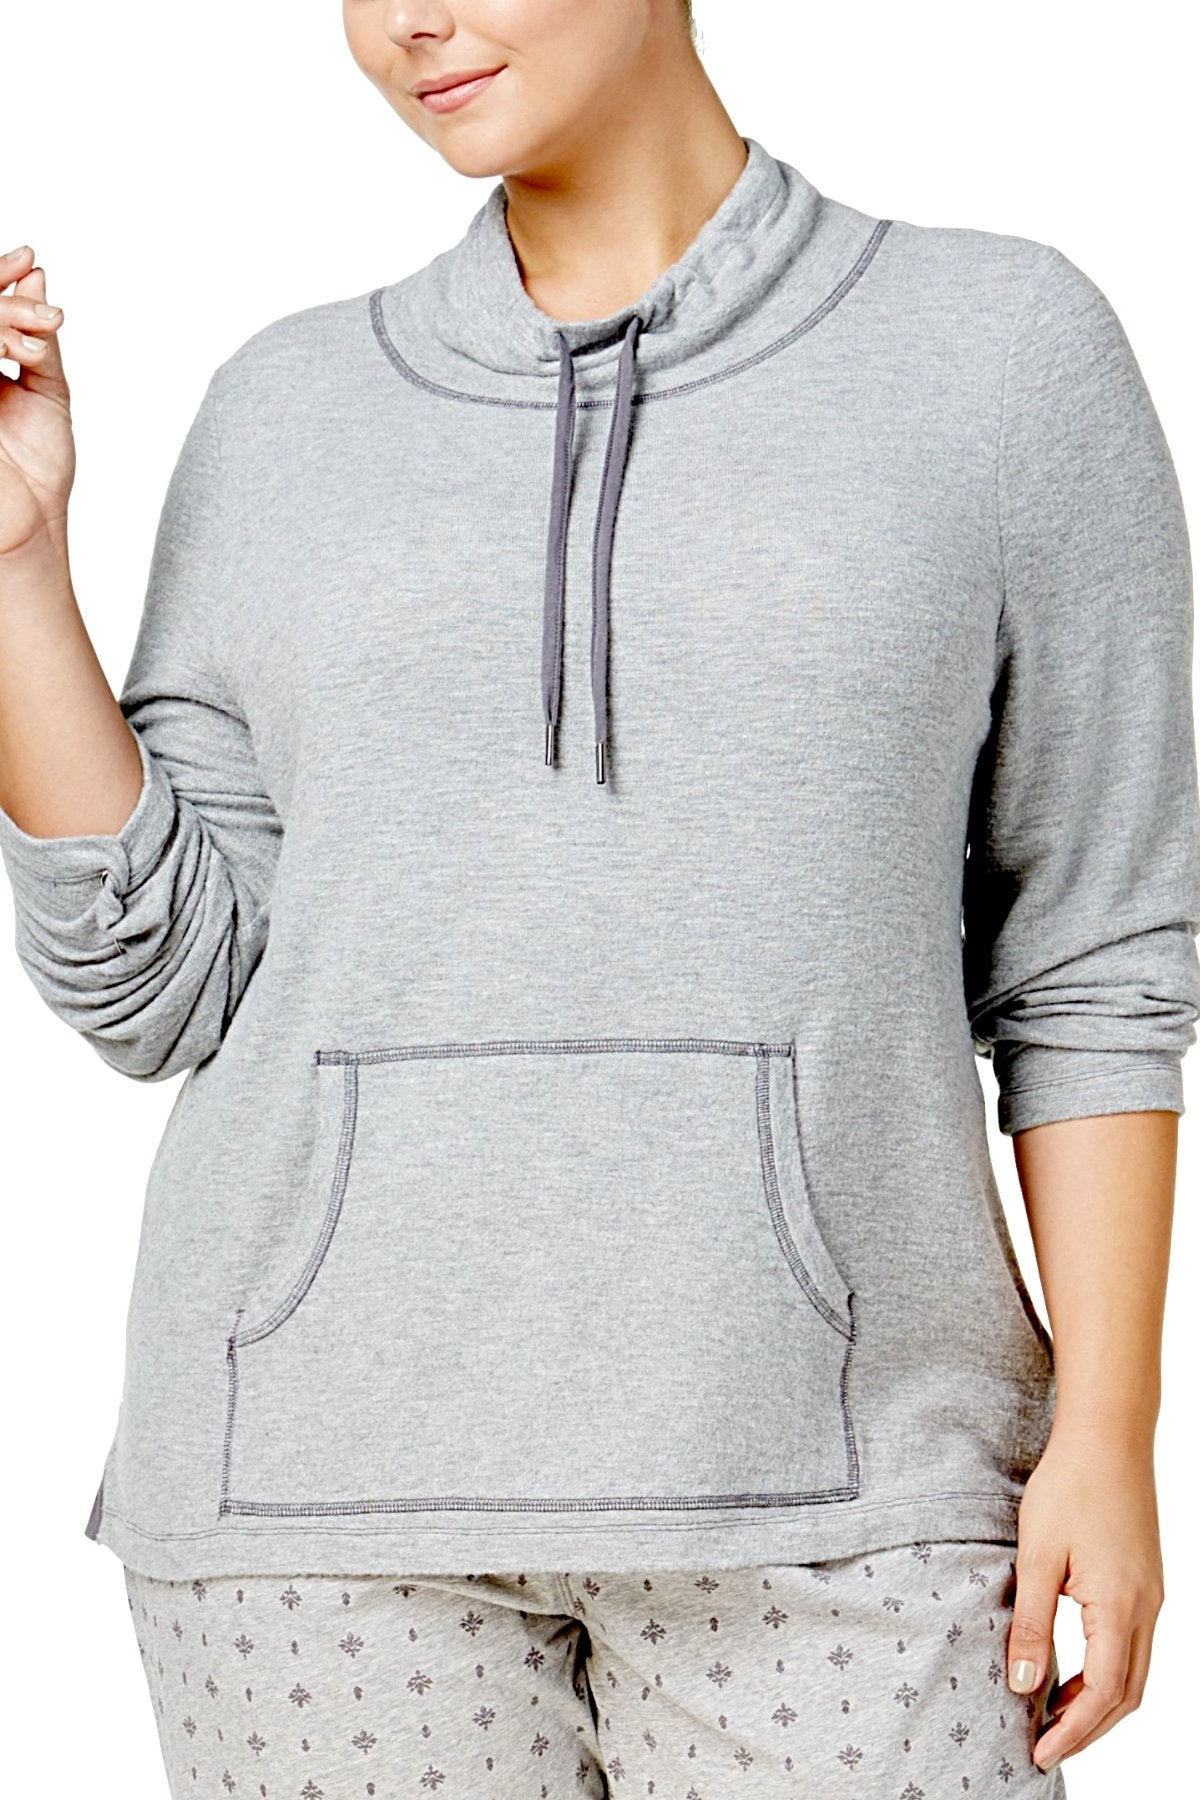 Nautica PLUS Heather-Grey Cowl-Neck Knit Lounge Top